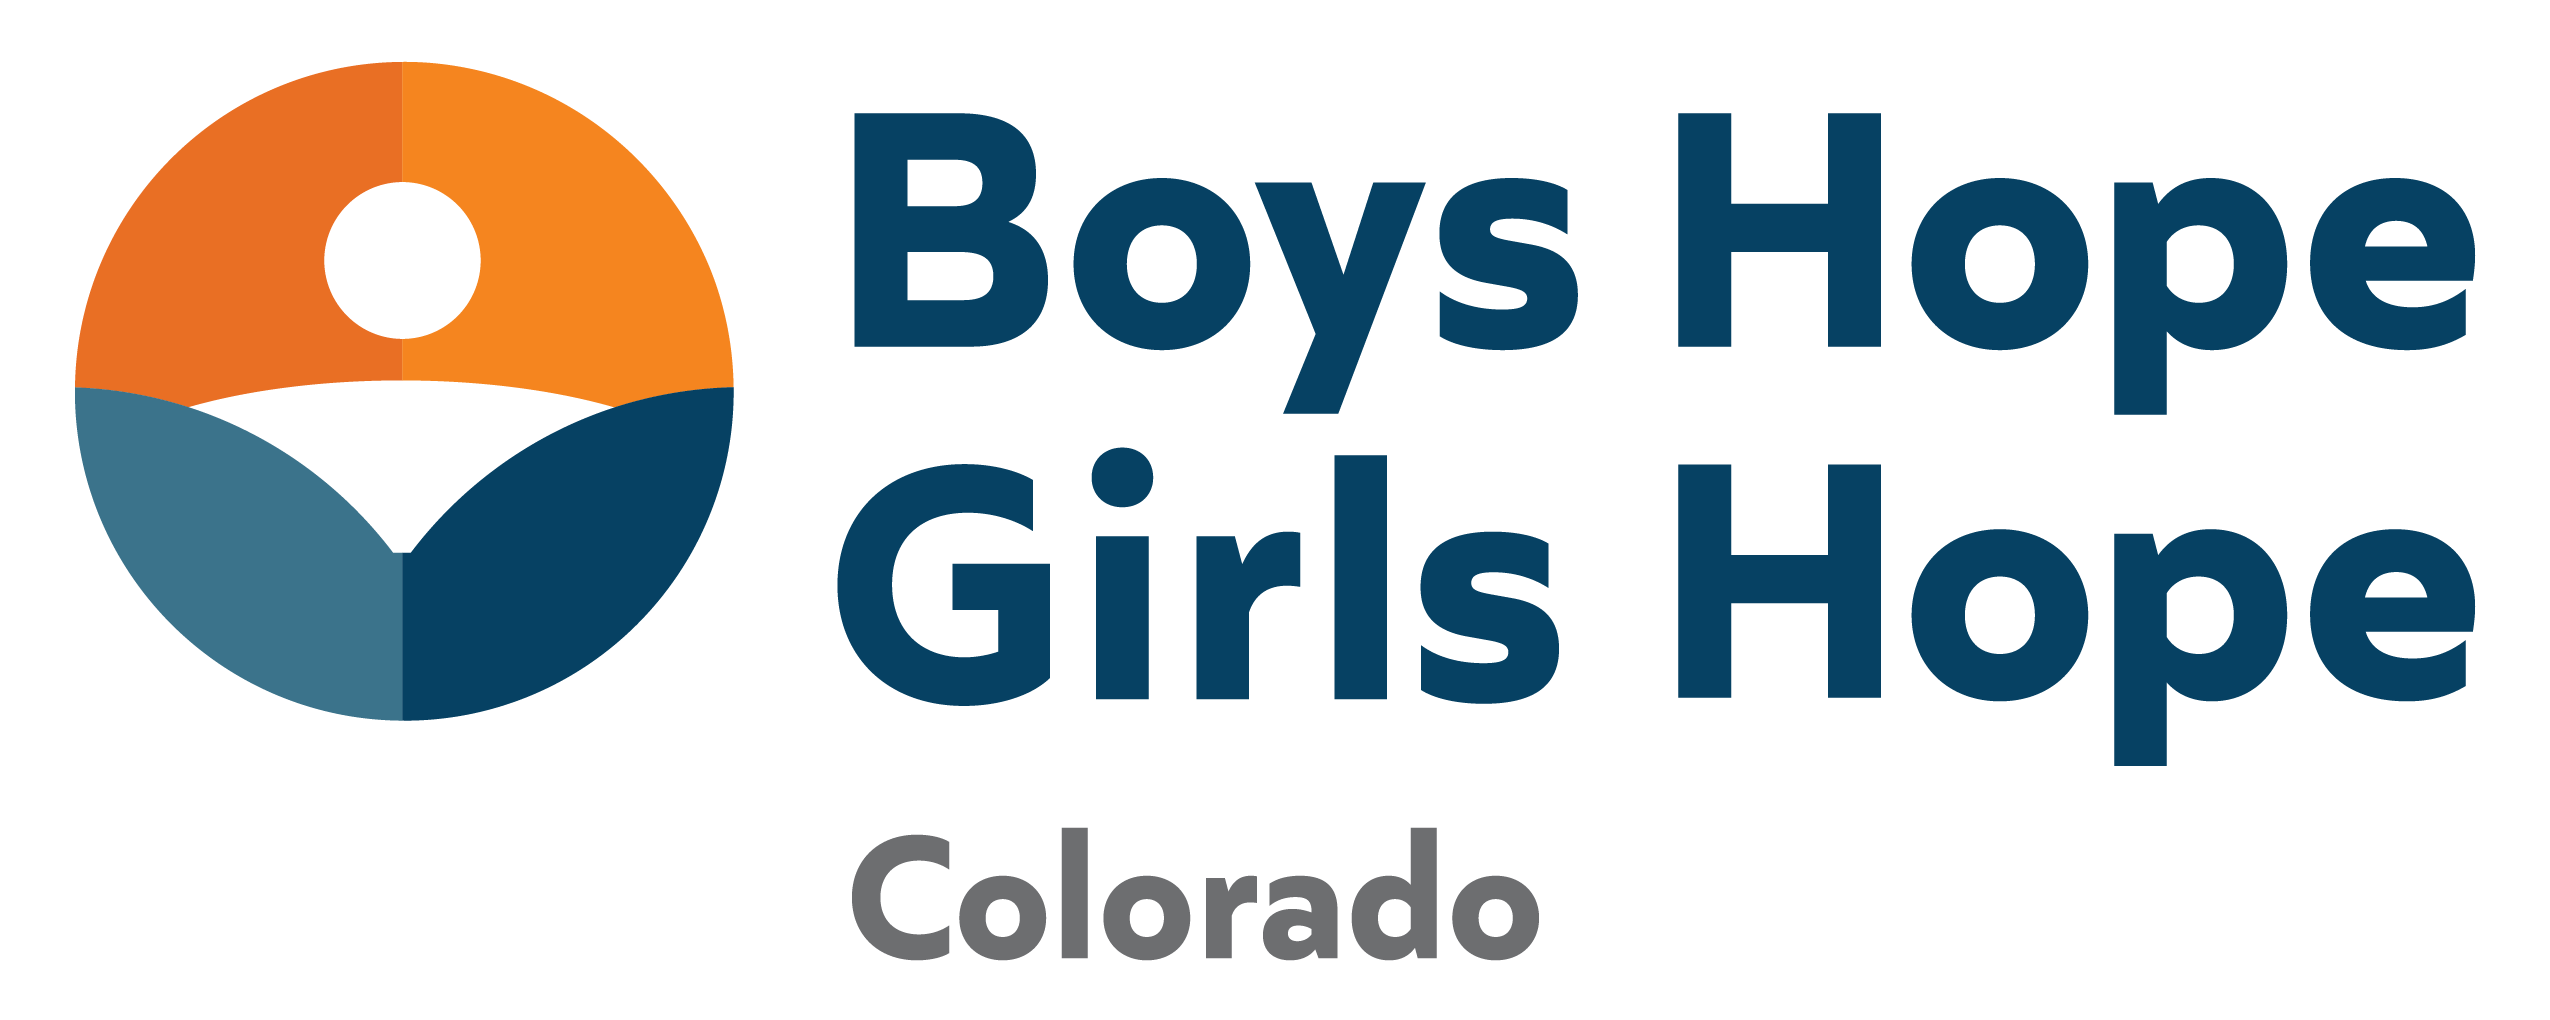 Boys Hope Girls Hope of Colorado